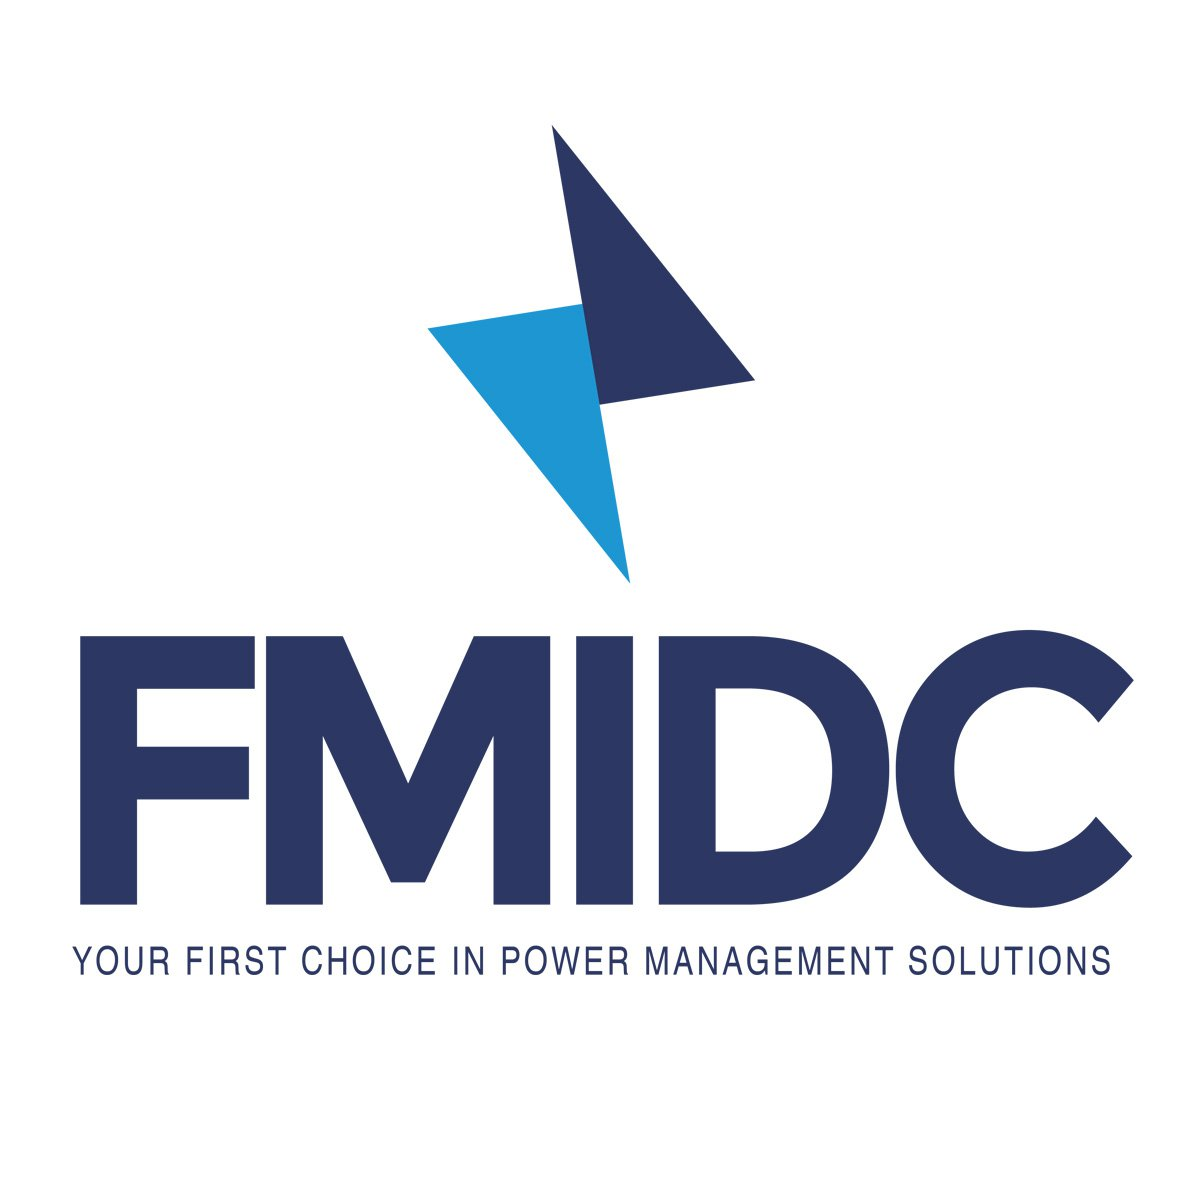 First Multi-Tech Industrial and Development Corporation